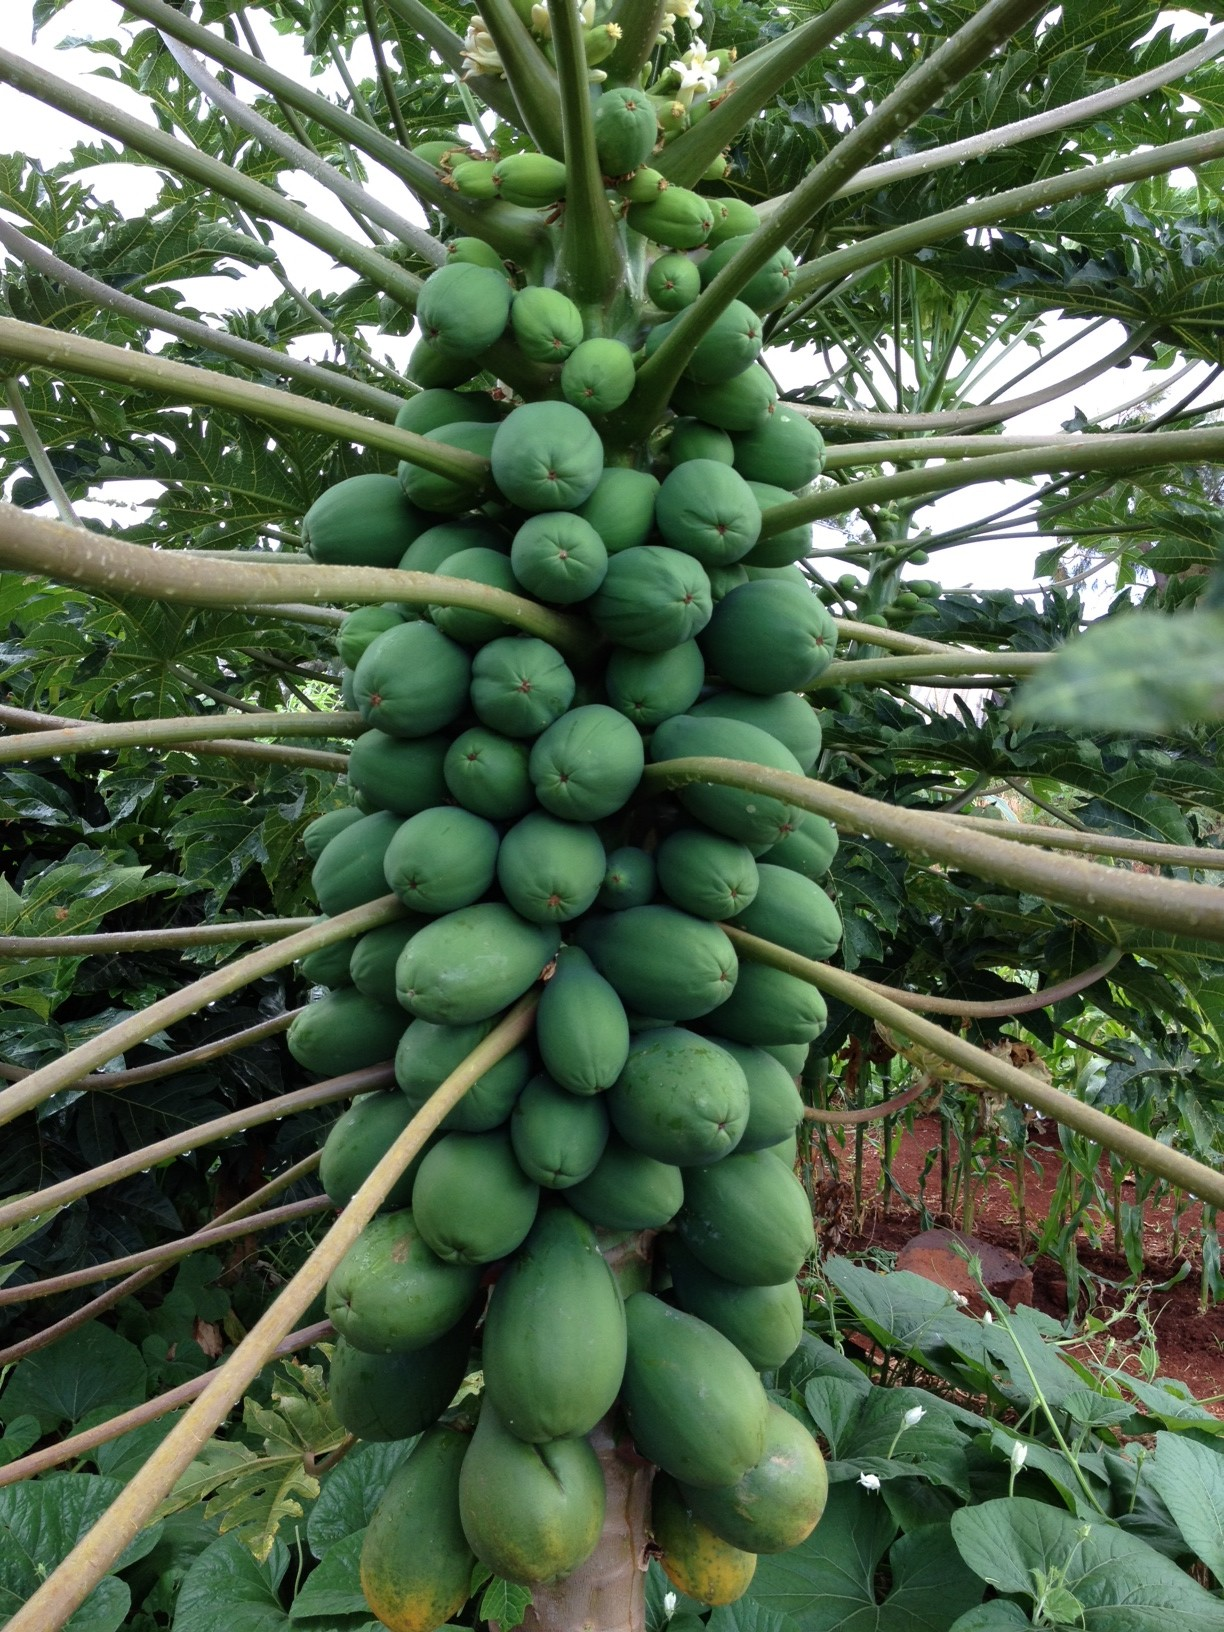 Papaya tree grown by Marshall Joy. It's growing in compost and is an excellent example of a healthy and productive papaya tree.